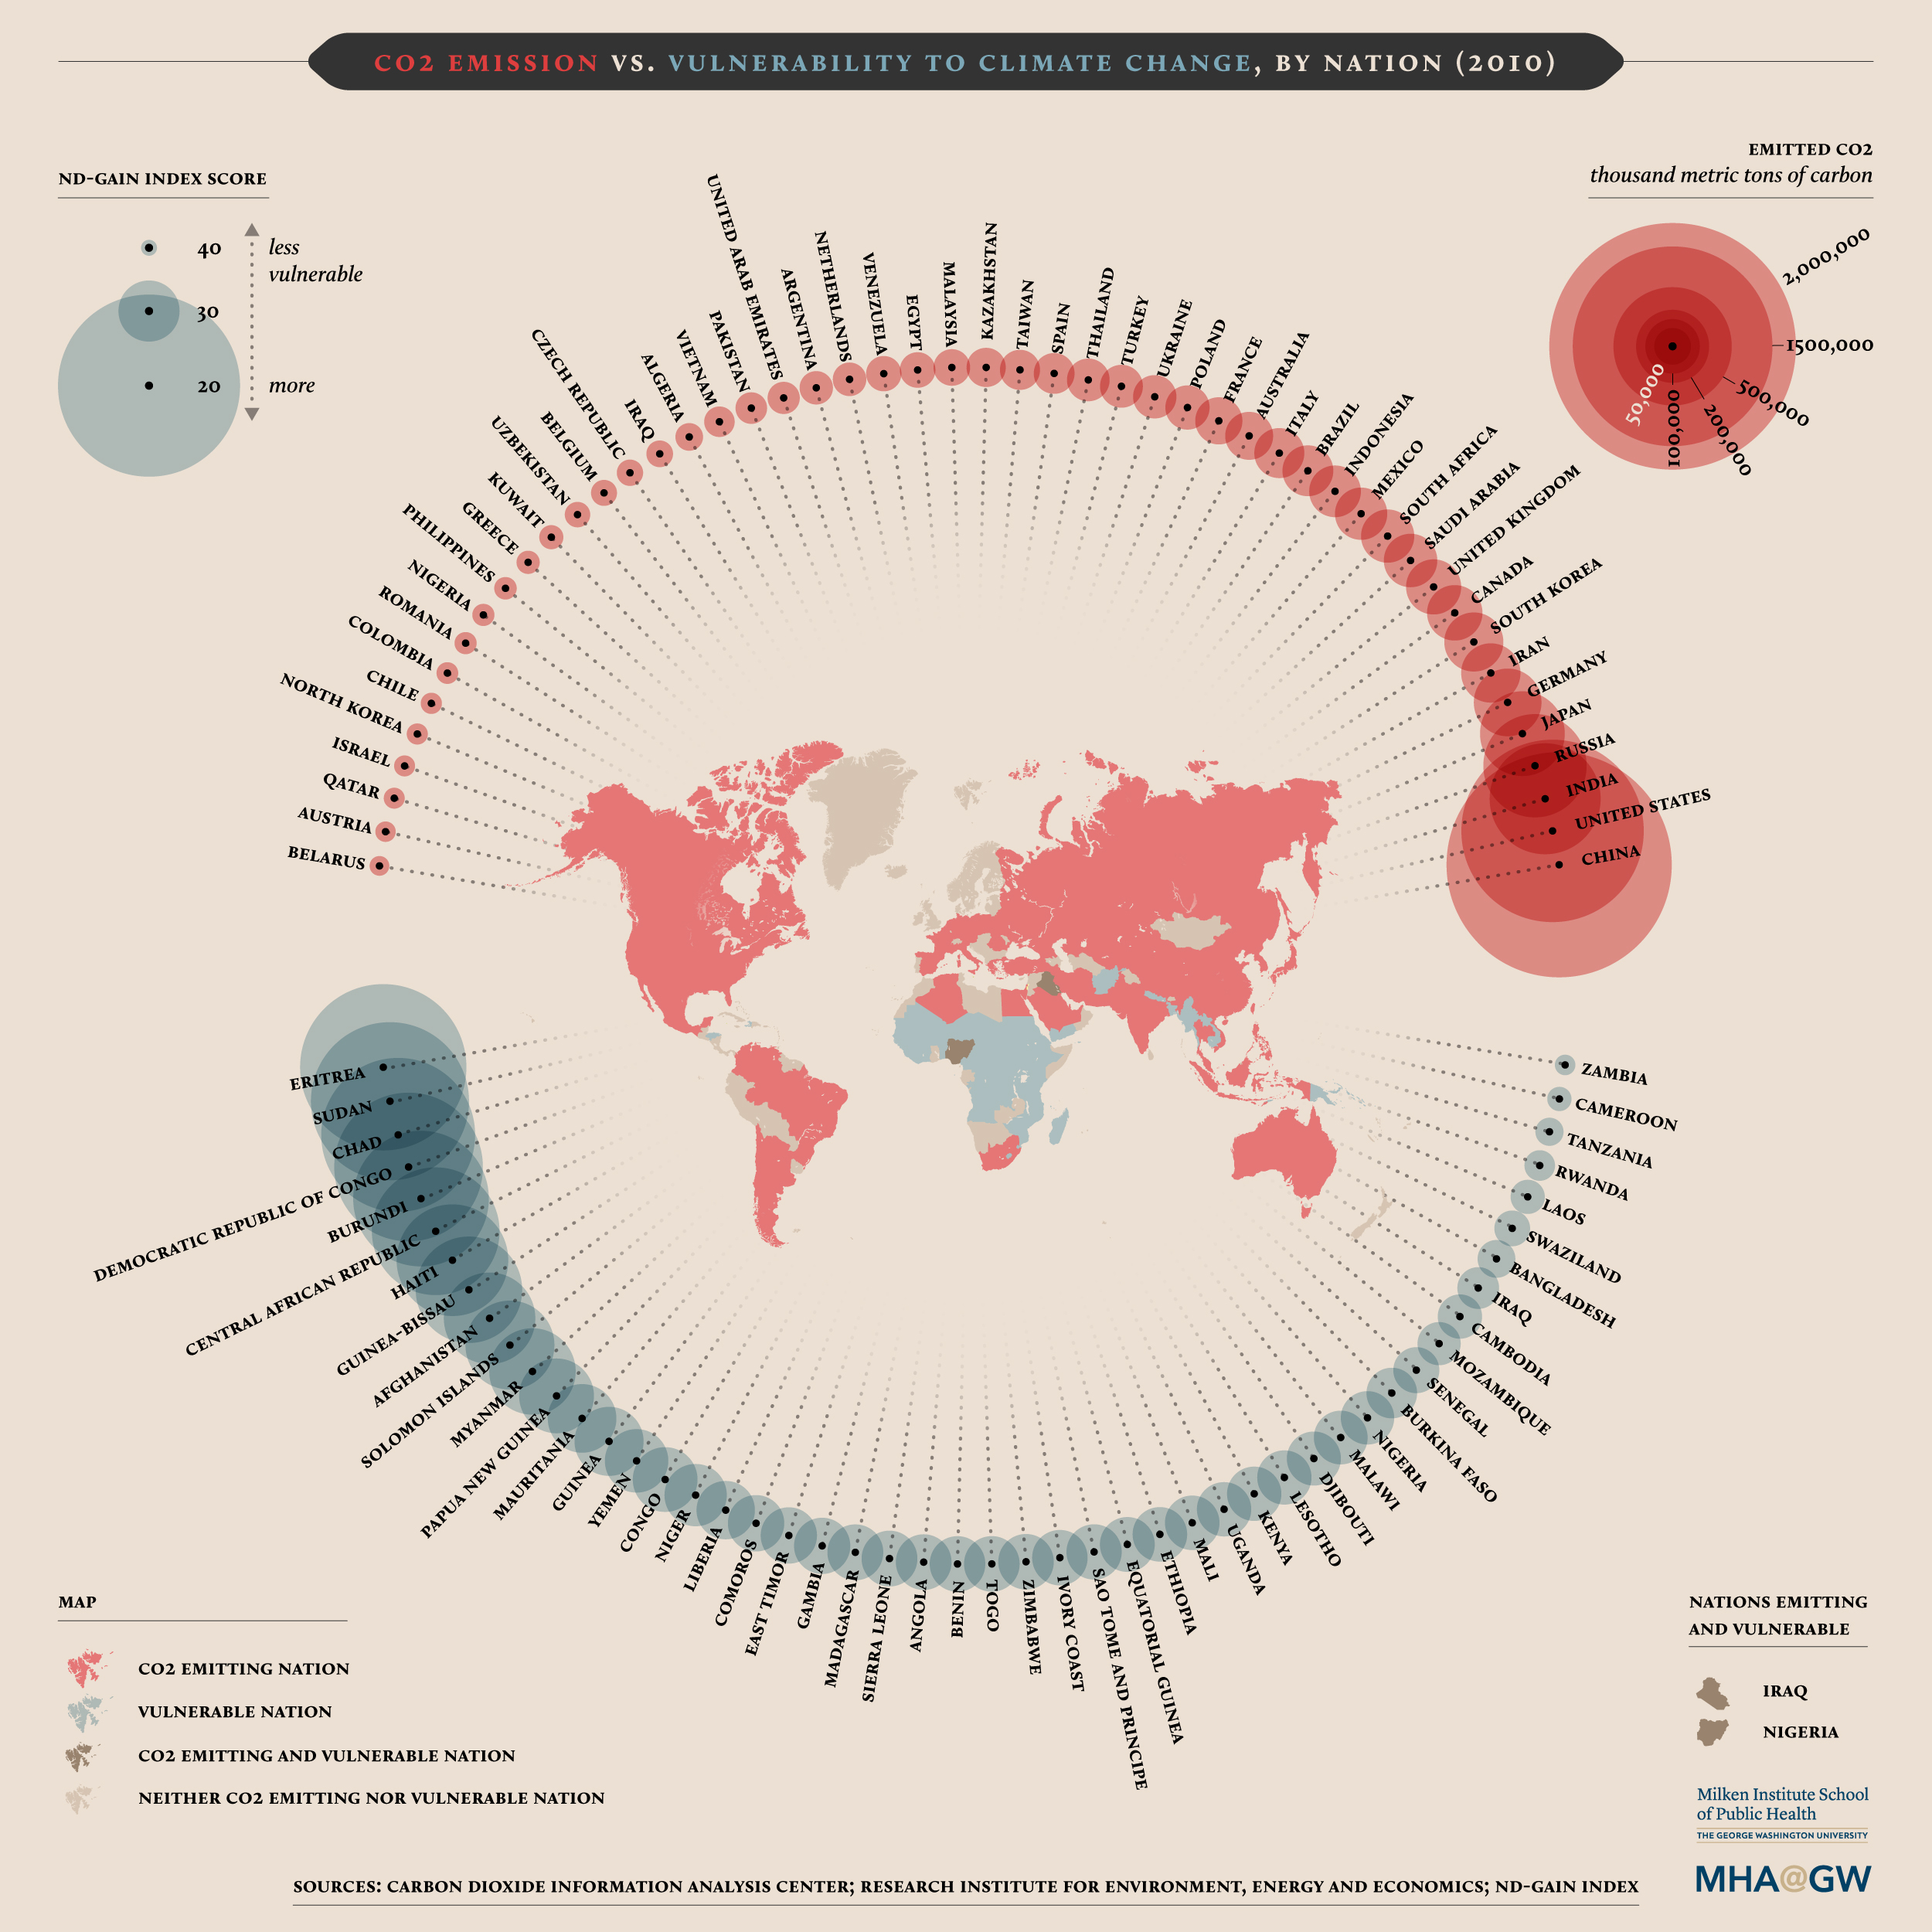 Carbon-Dioxide-Emissions-vs-Vulnerability-to-Climate-Change-by-Nation-climate-change-facts-infographic